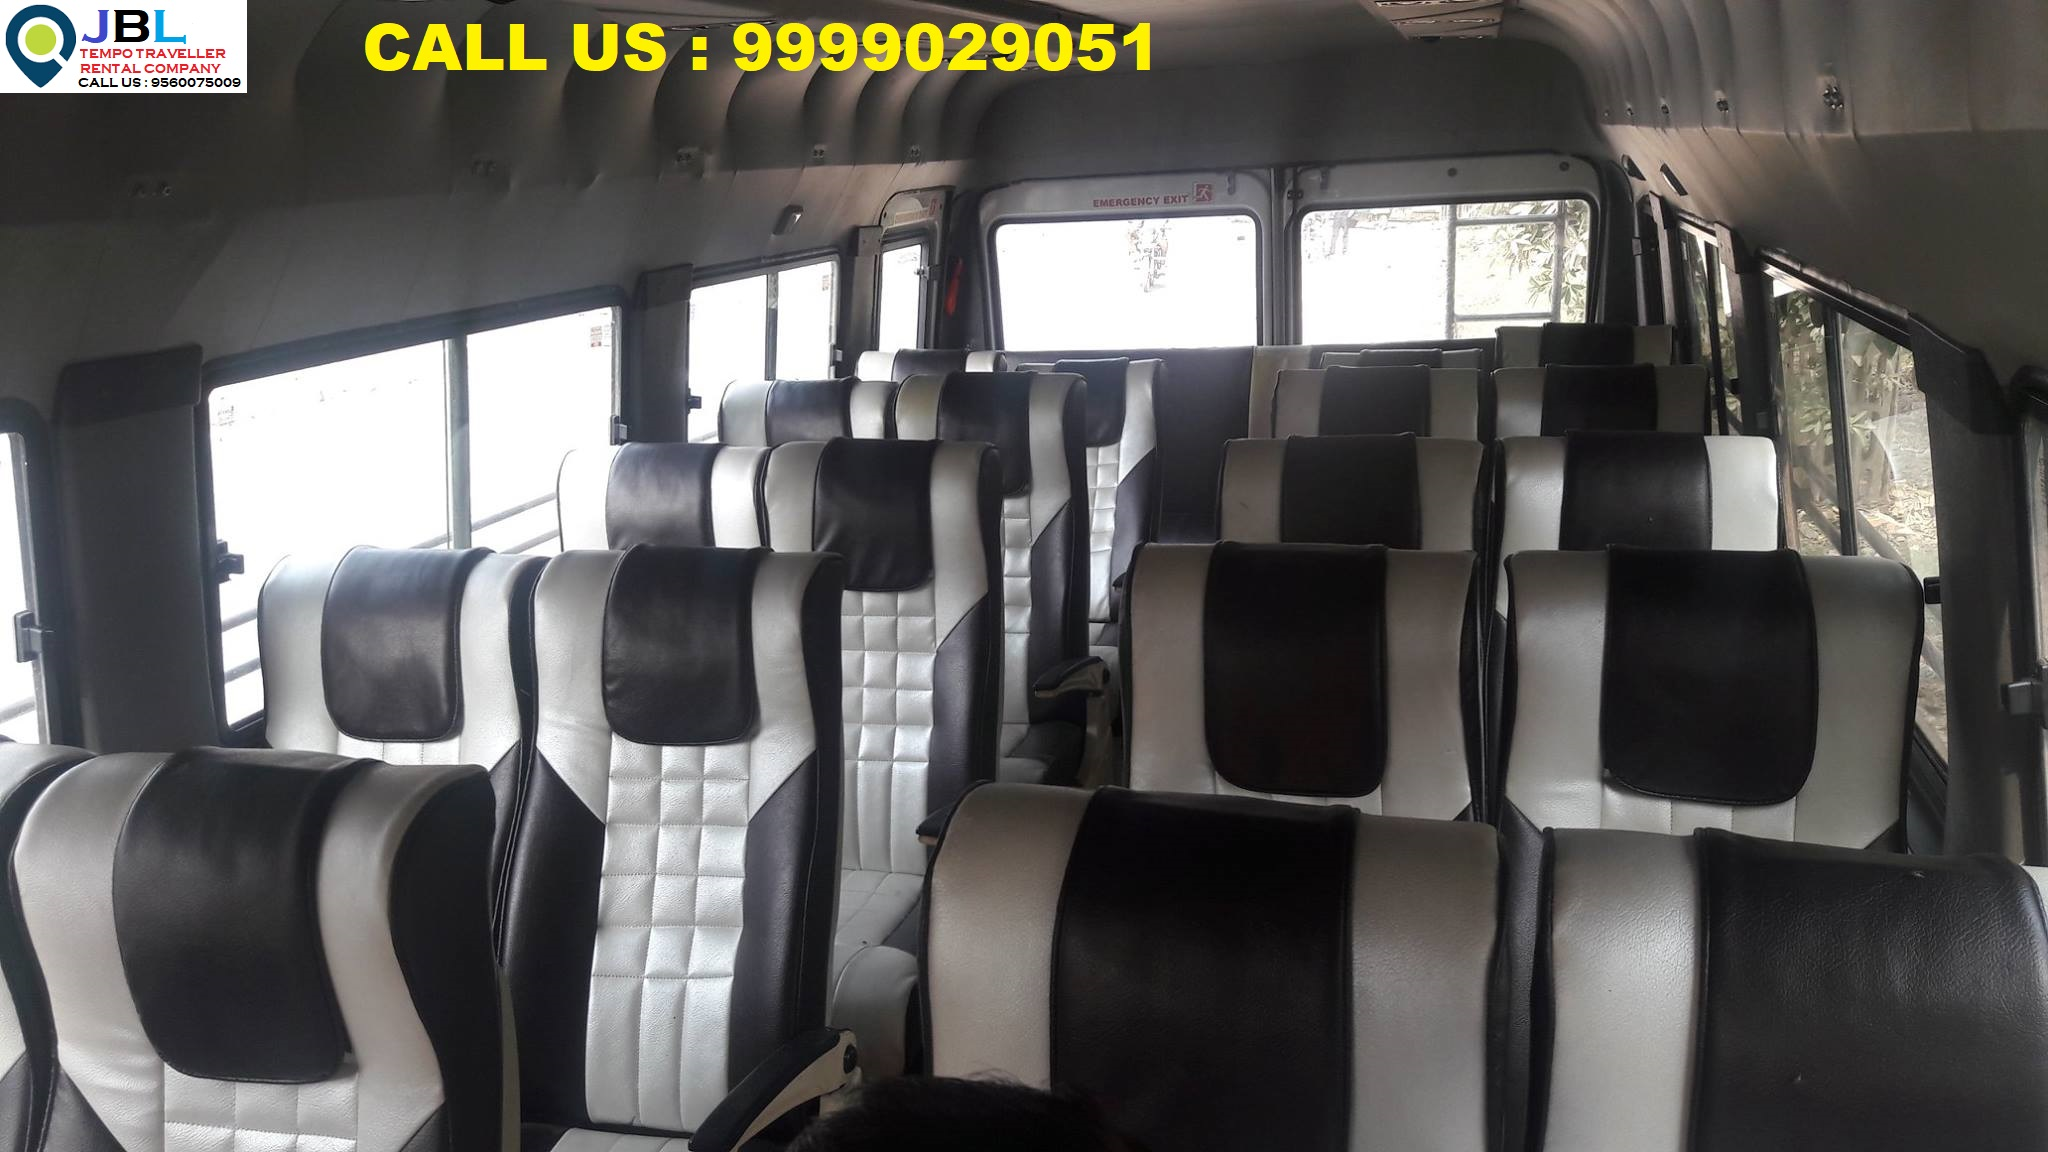 Rent tempo traveller in Sector 80�Faridabad